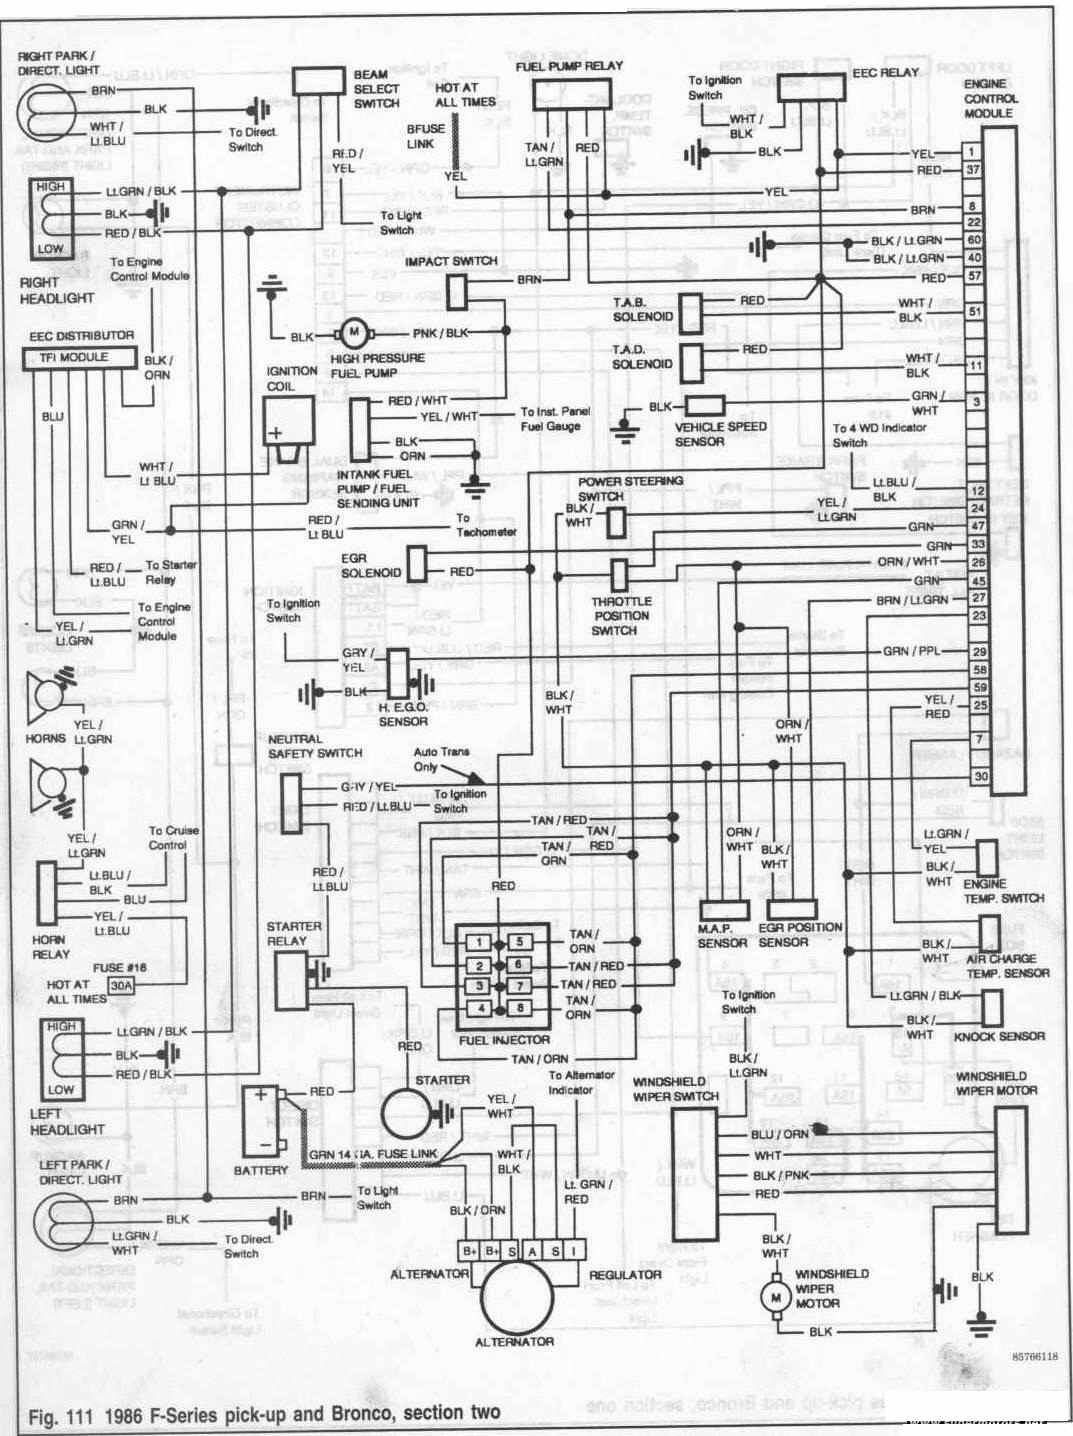 1980 chevy alternator wiring diagram with Ford Bronco And F Series Pickup 1986 on 2004 Chevy Trailblazer 6 Cylinder Engines in addition 71 72 Mgb Wiring Diagram further Viewtopic as well Alternator Wiring as well Ford Bronco And F Series Pickup 1986.